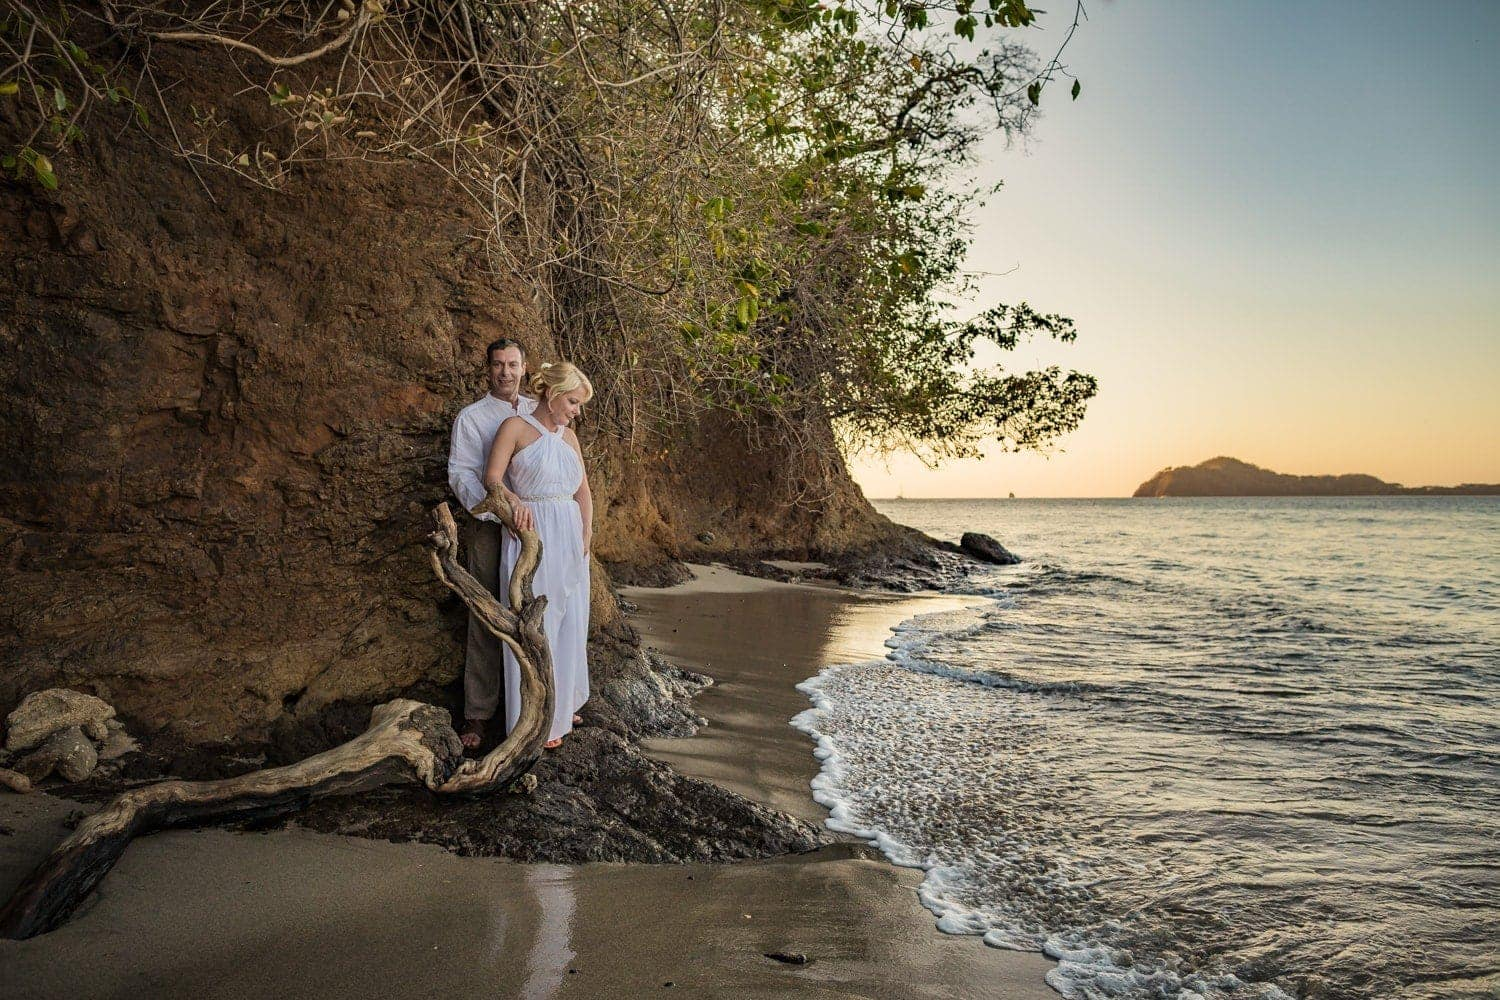 Kim-Richard-wedding-photos-Occidental-Papagayo-Costa-Rica.jpg